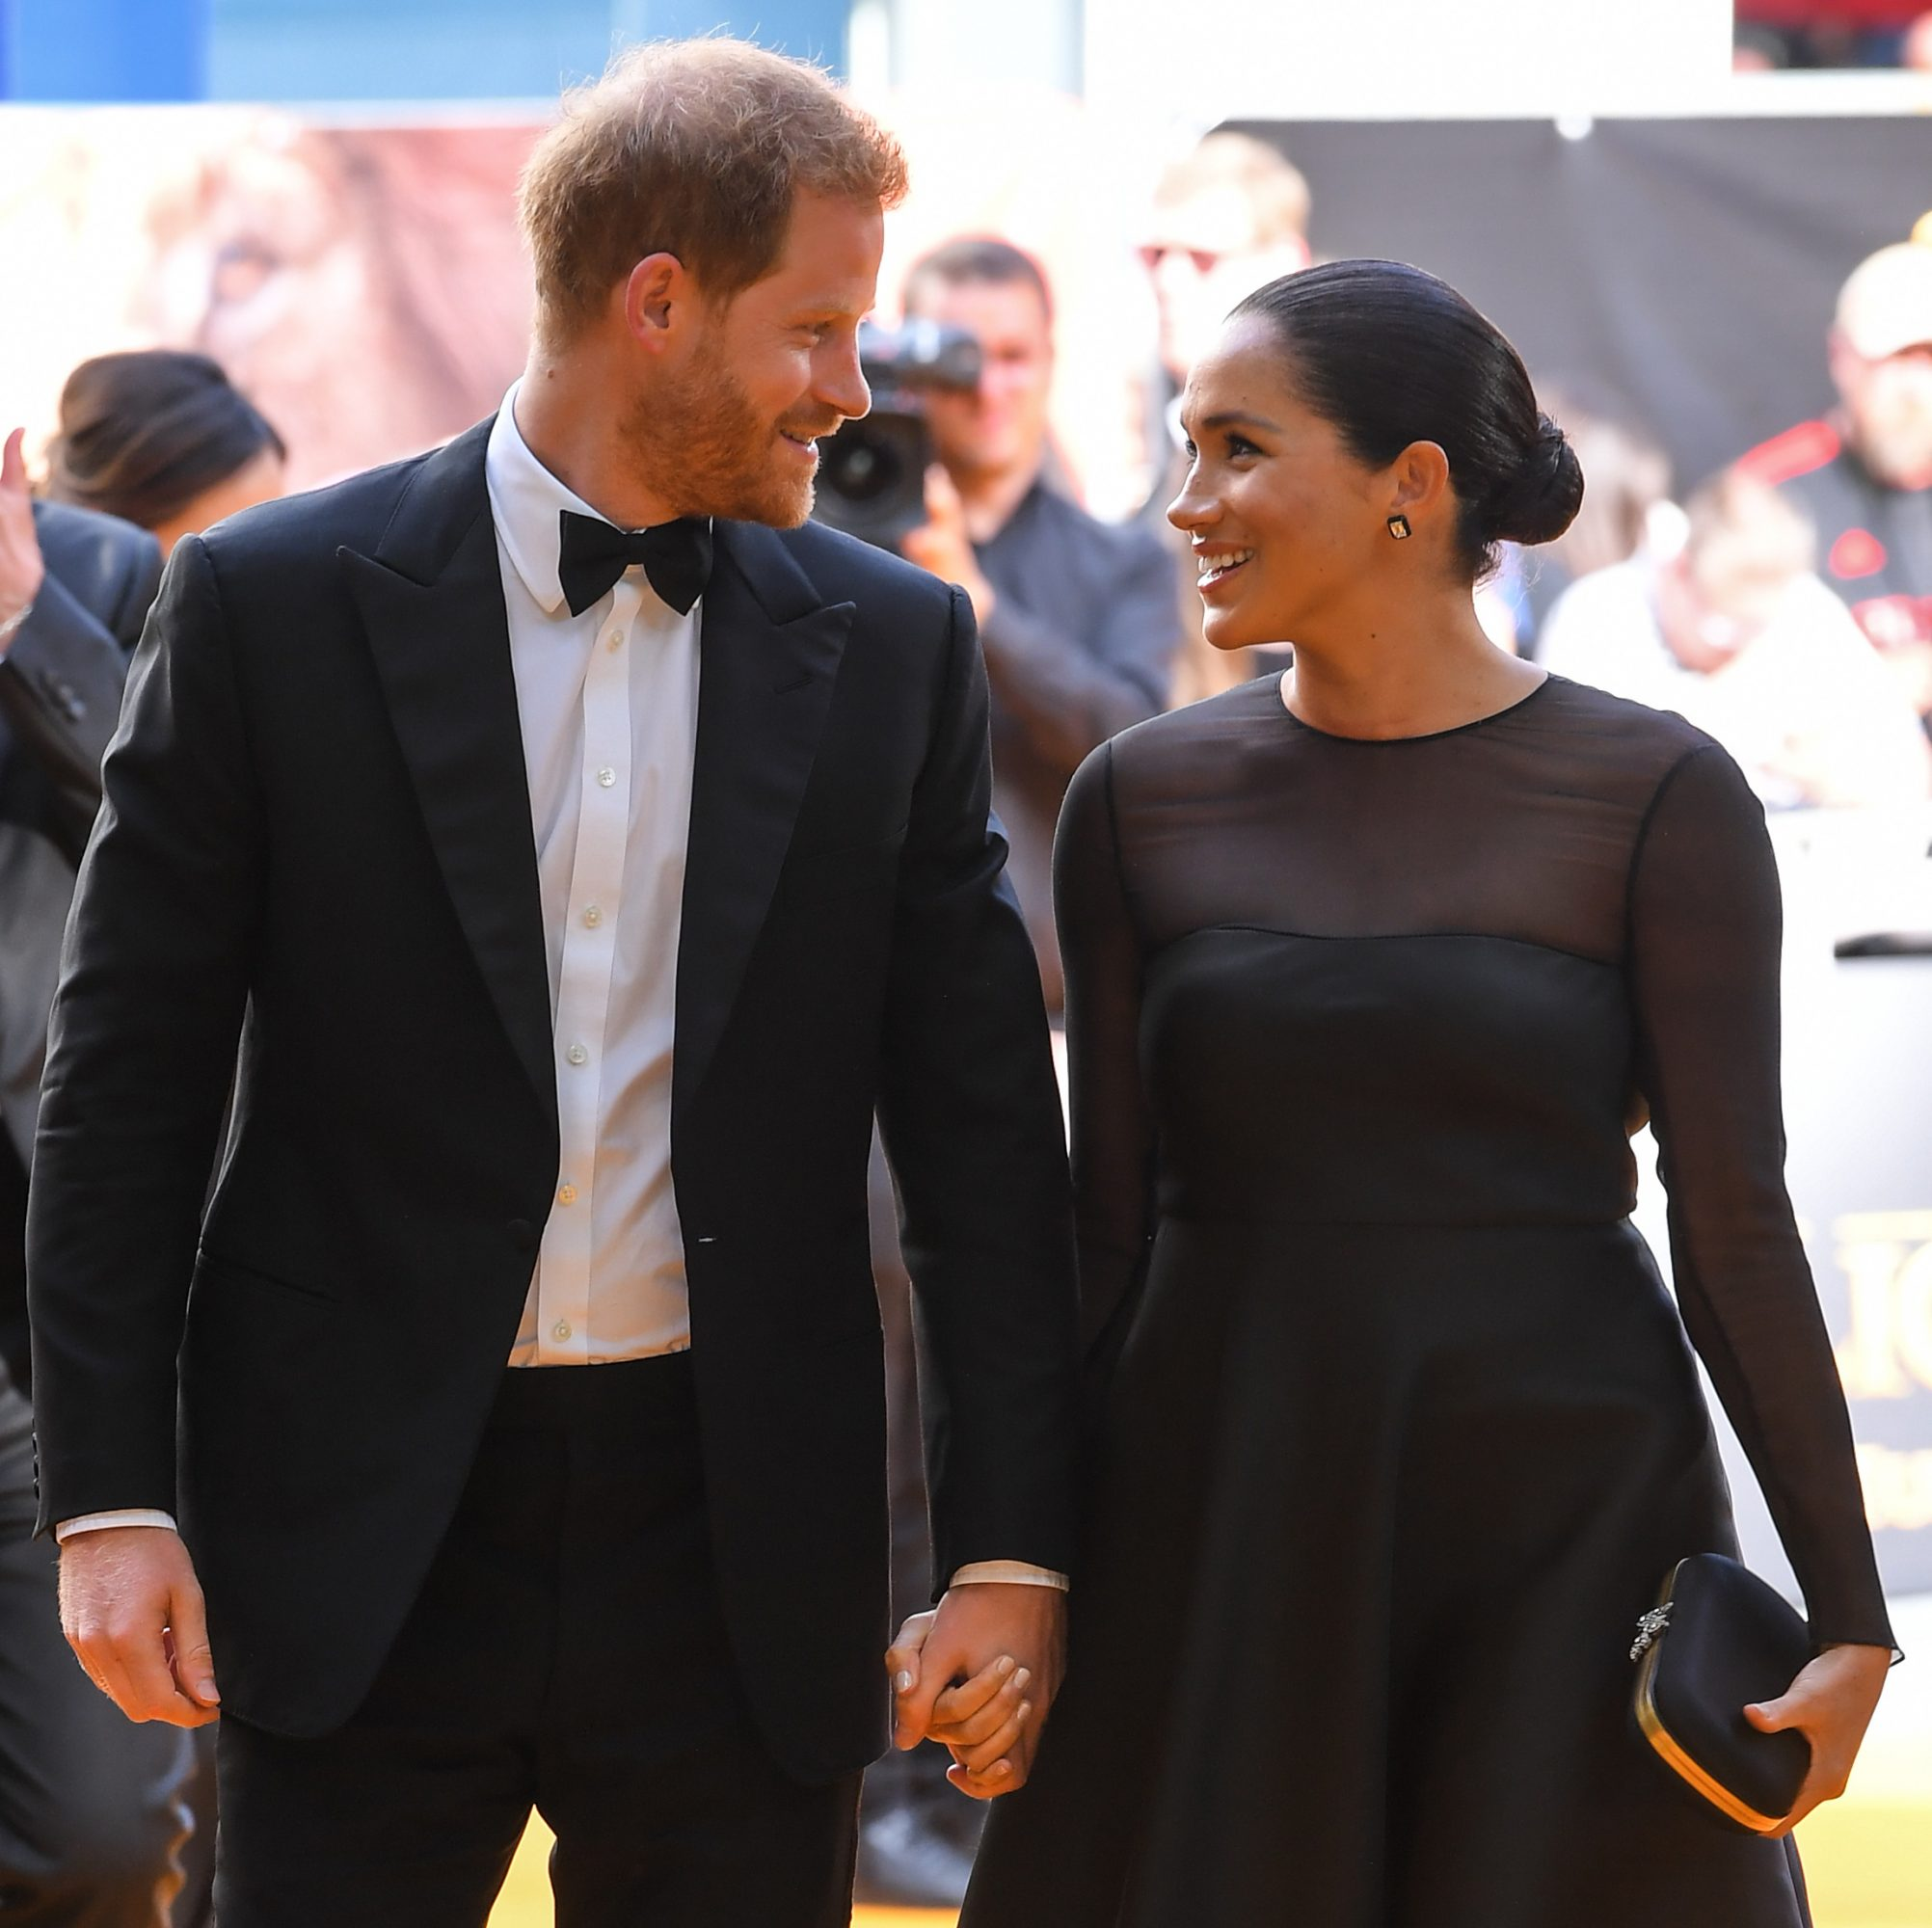 Topic Prince Harry: Meghan, Duchess Of Sussex News, Articles, Stories & Trends